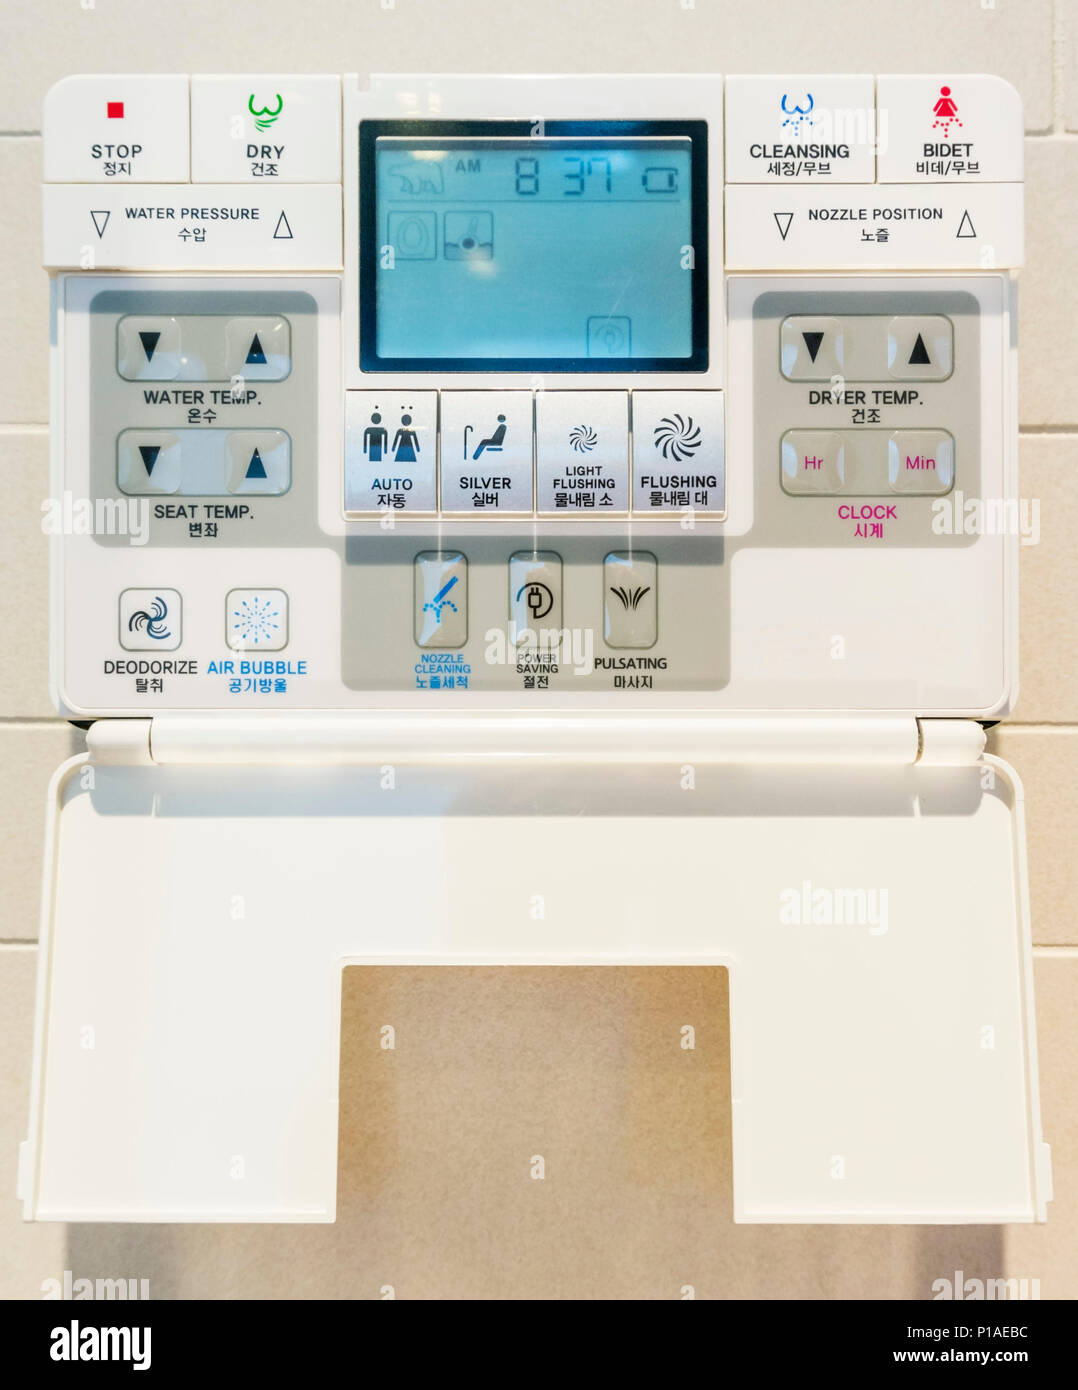 japanese style modern toilet with bidet wash function smart toilet automatic flushing with various washing functions wall control panel - Stock Image